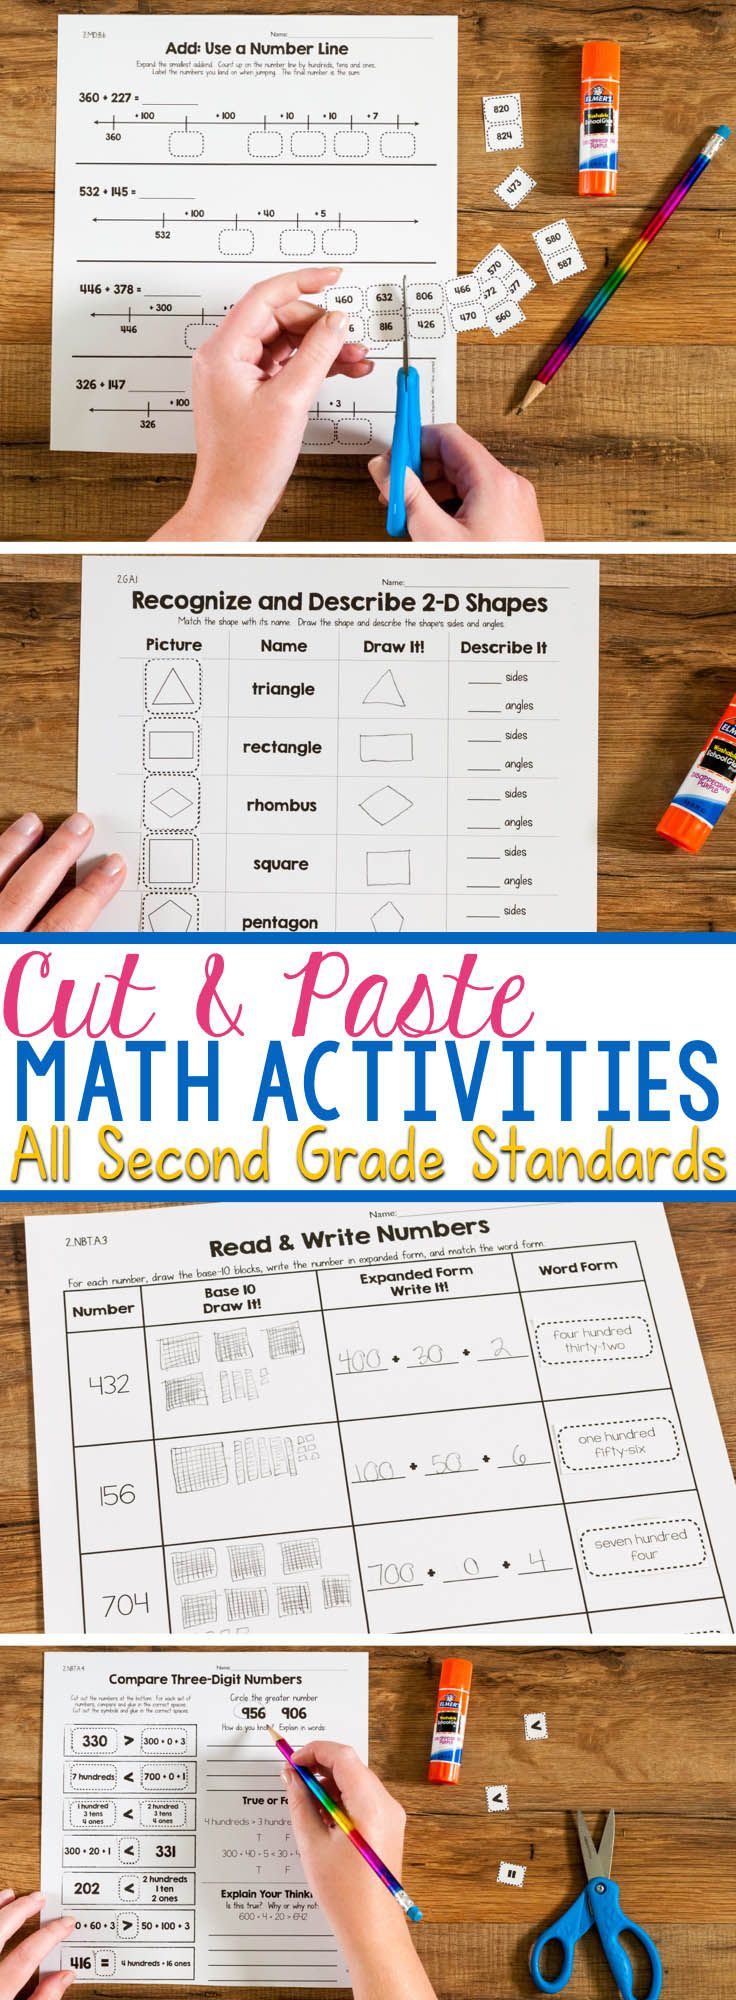 Cut & Paste Math Activities for Every Second Grade Standard | Common ...